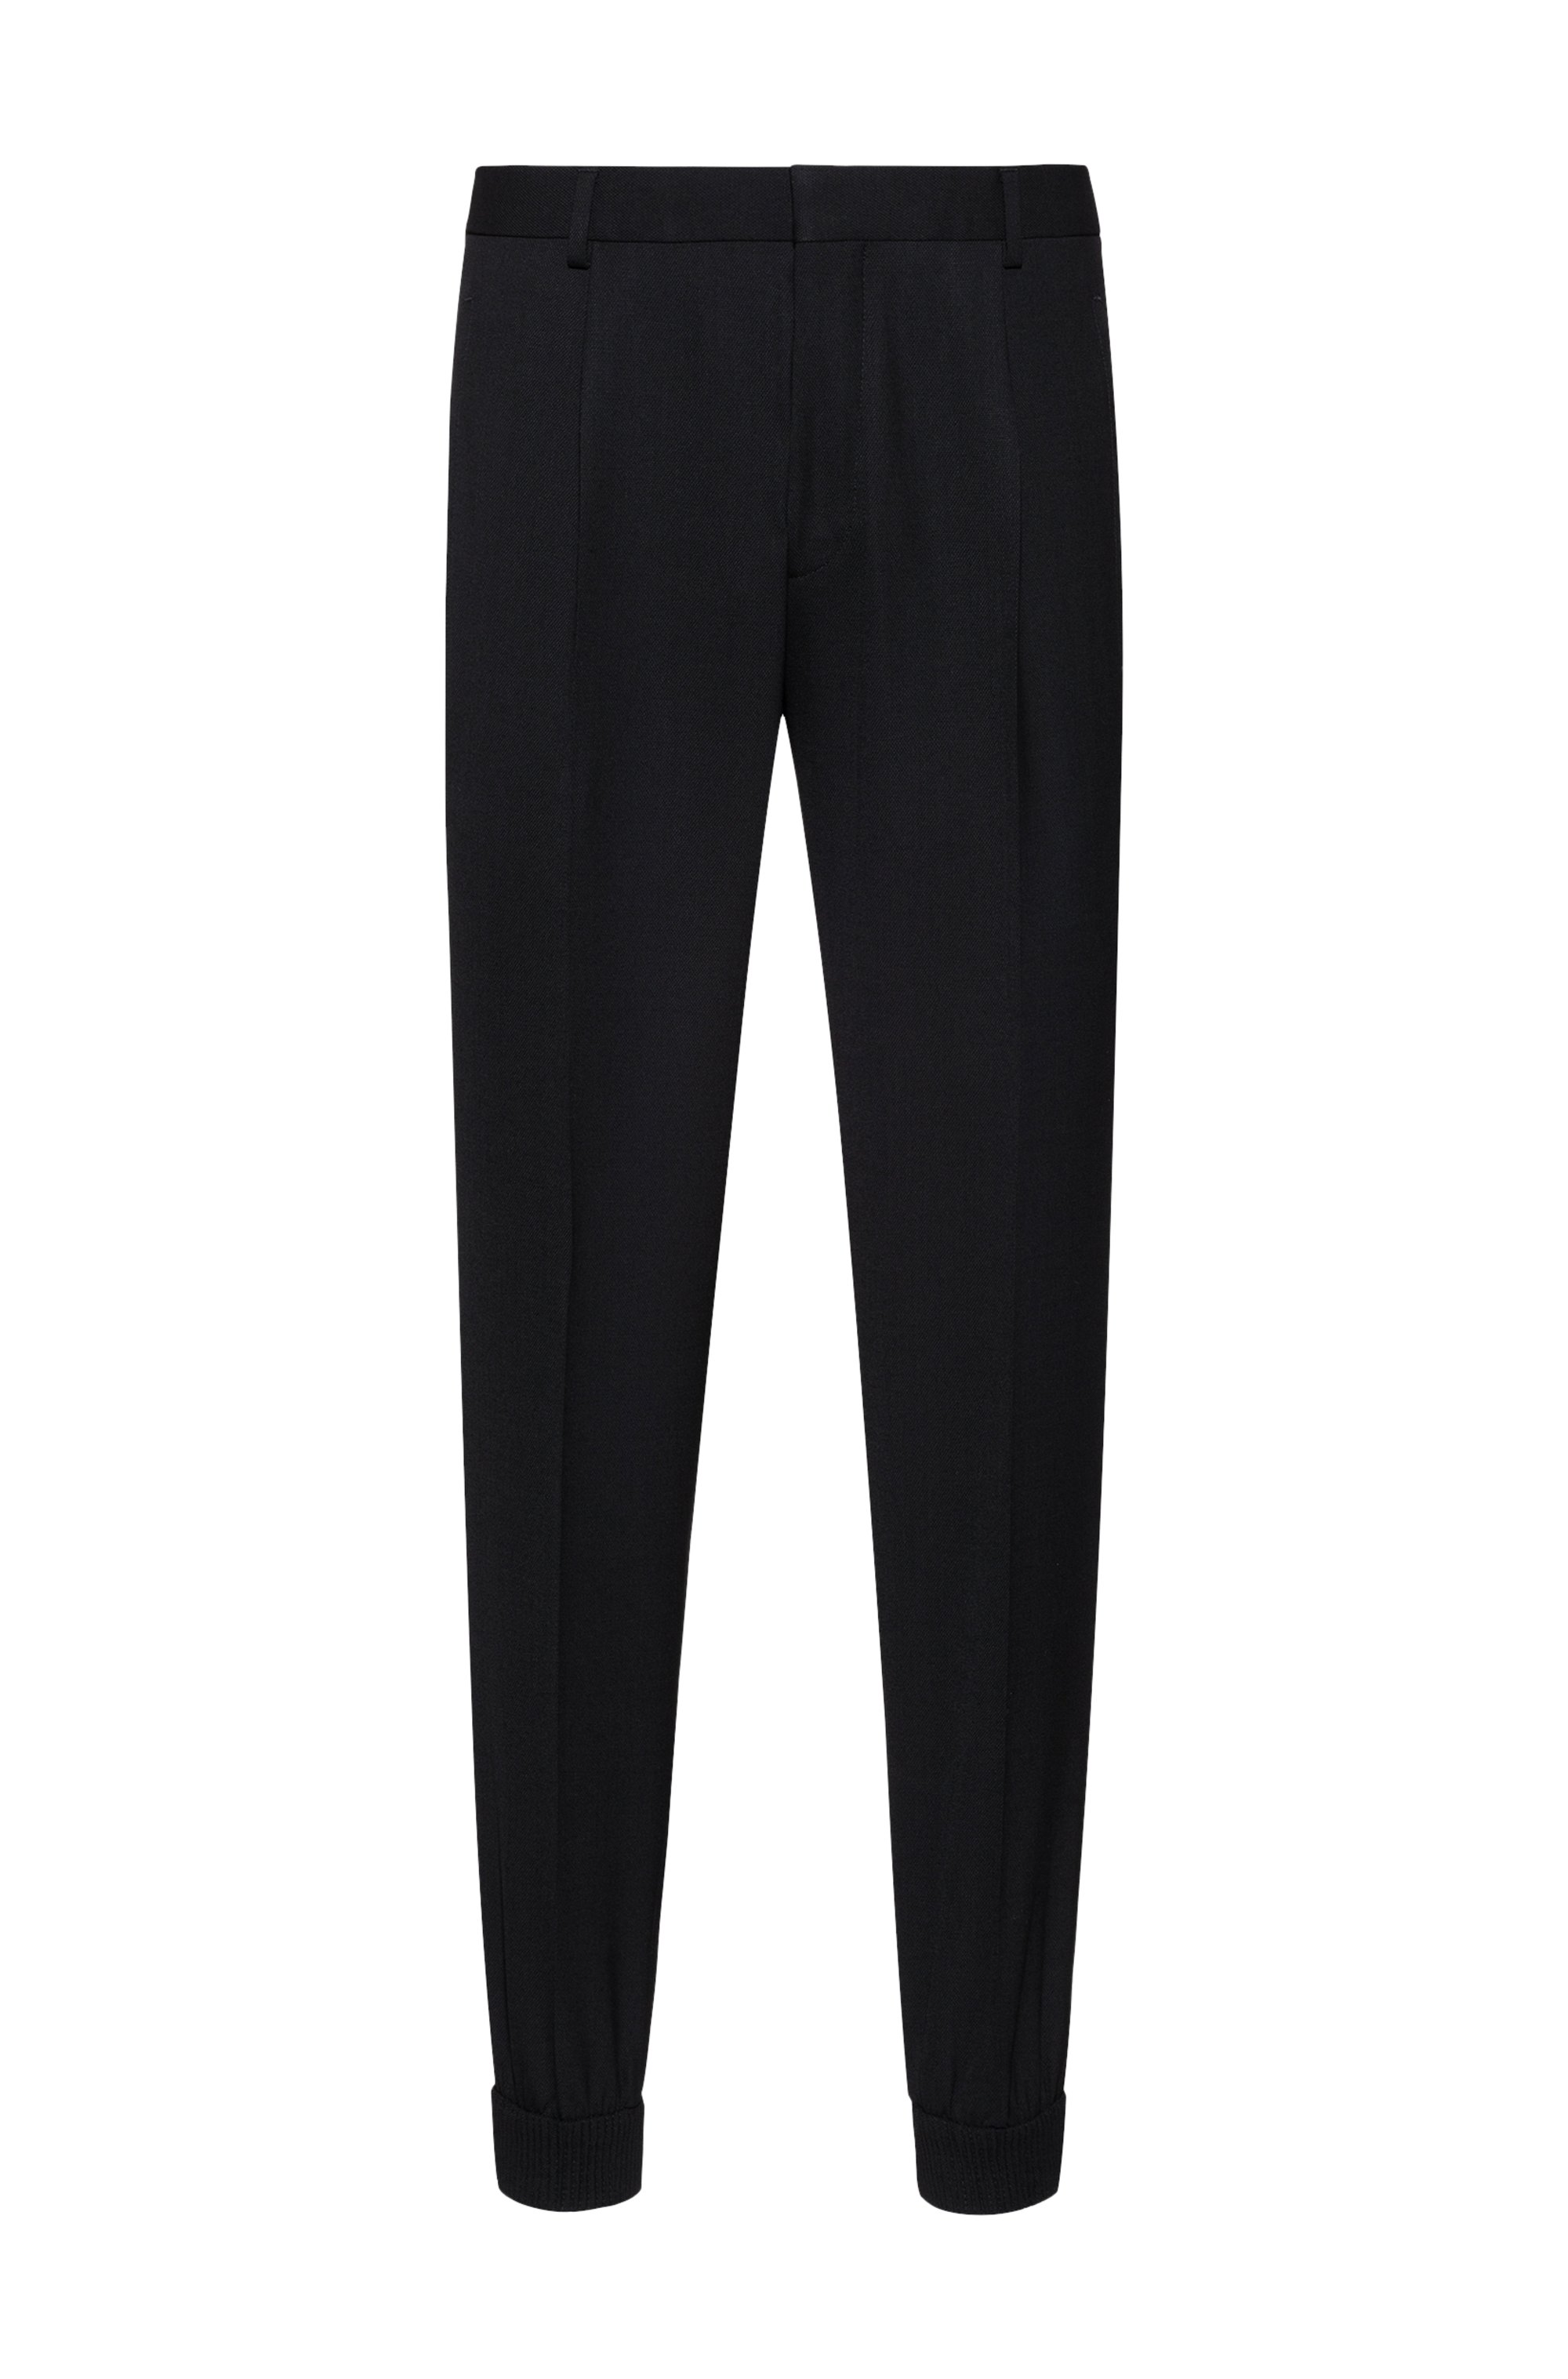 Cuffed extra-slim-fit trousers in super-flex fabric, Black